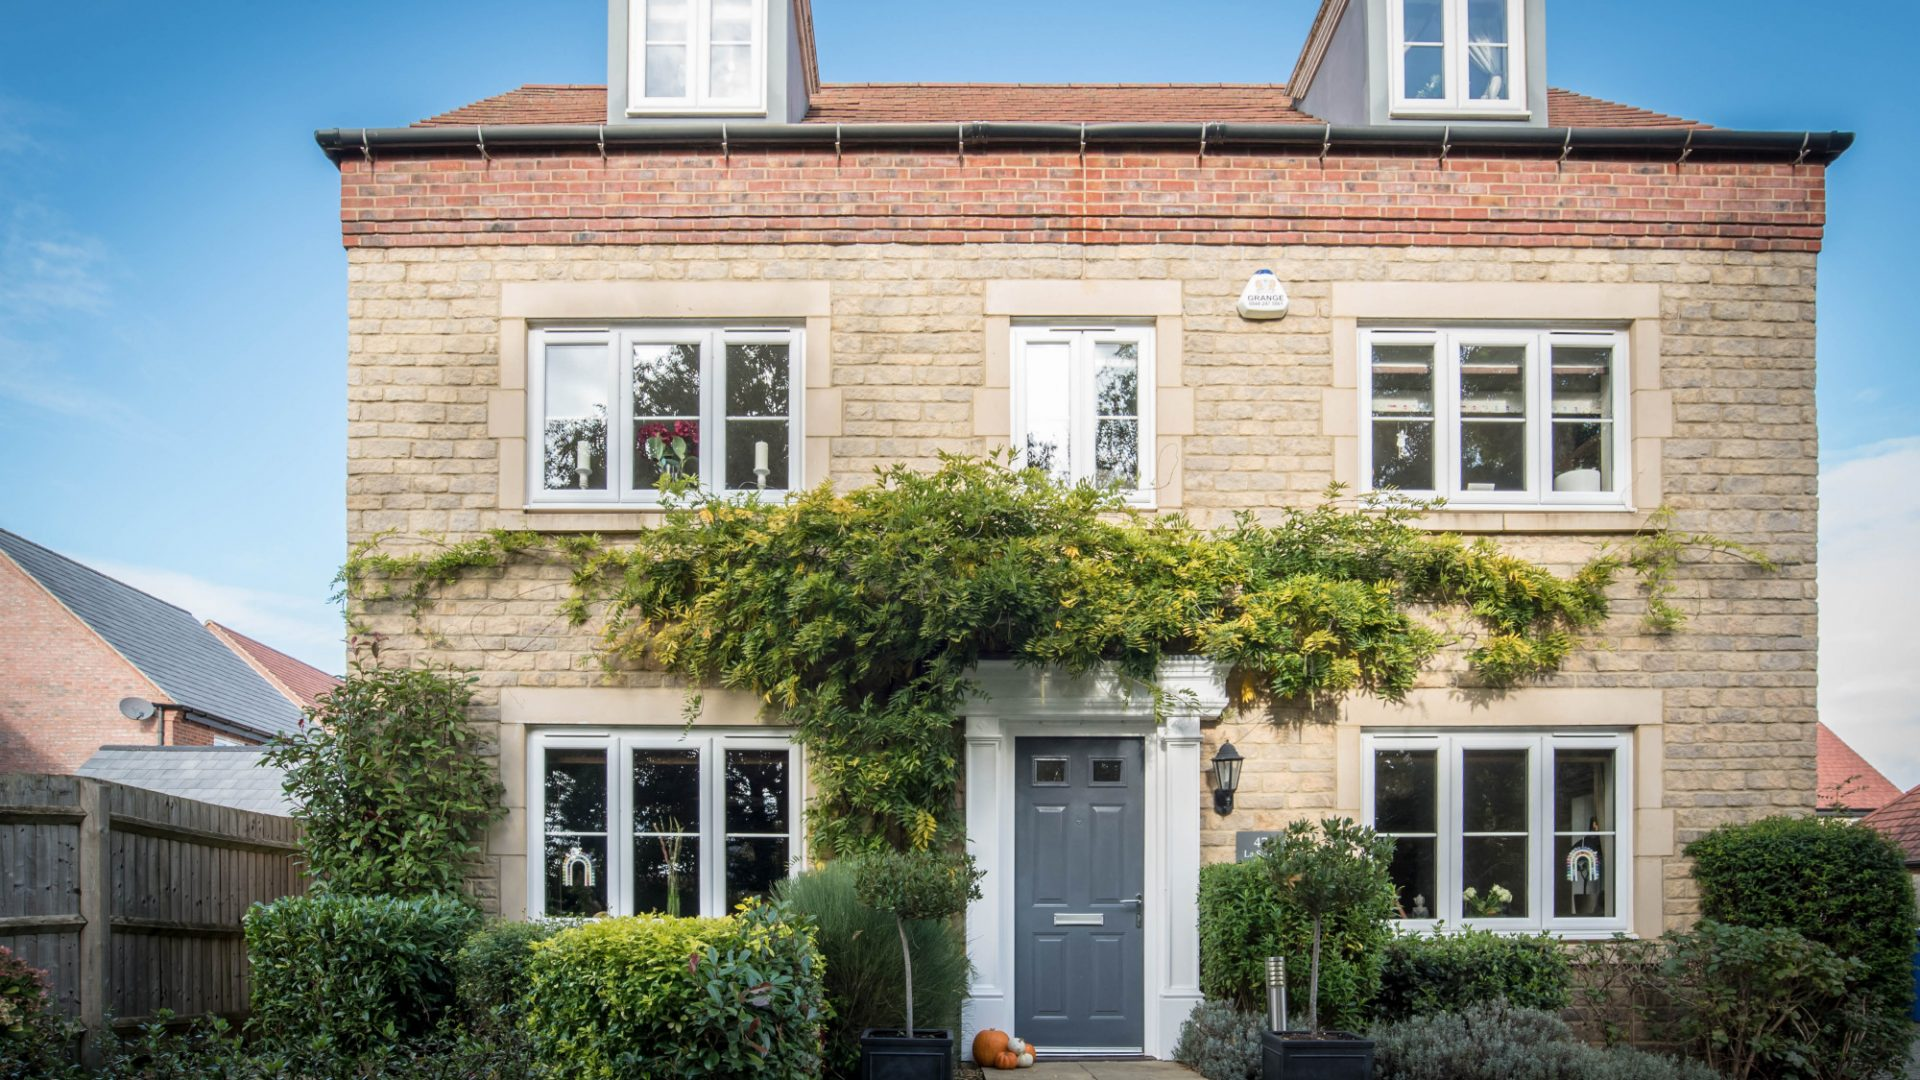 Kempton Close, Bicester for sale with Mr and Mrs Clarke estate agent